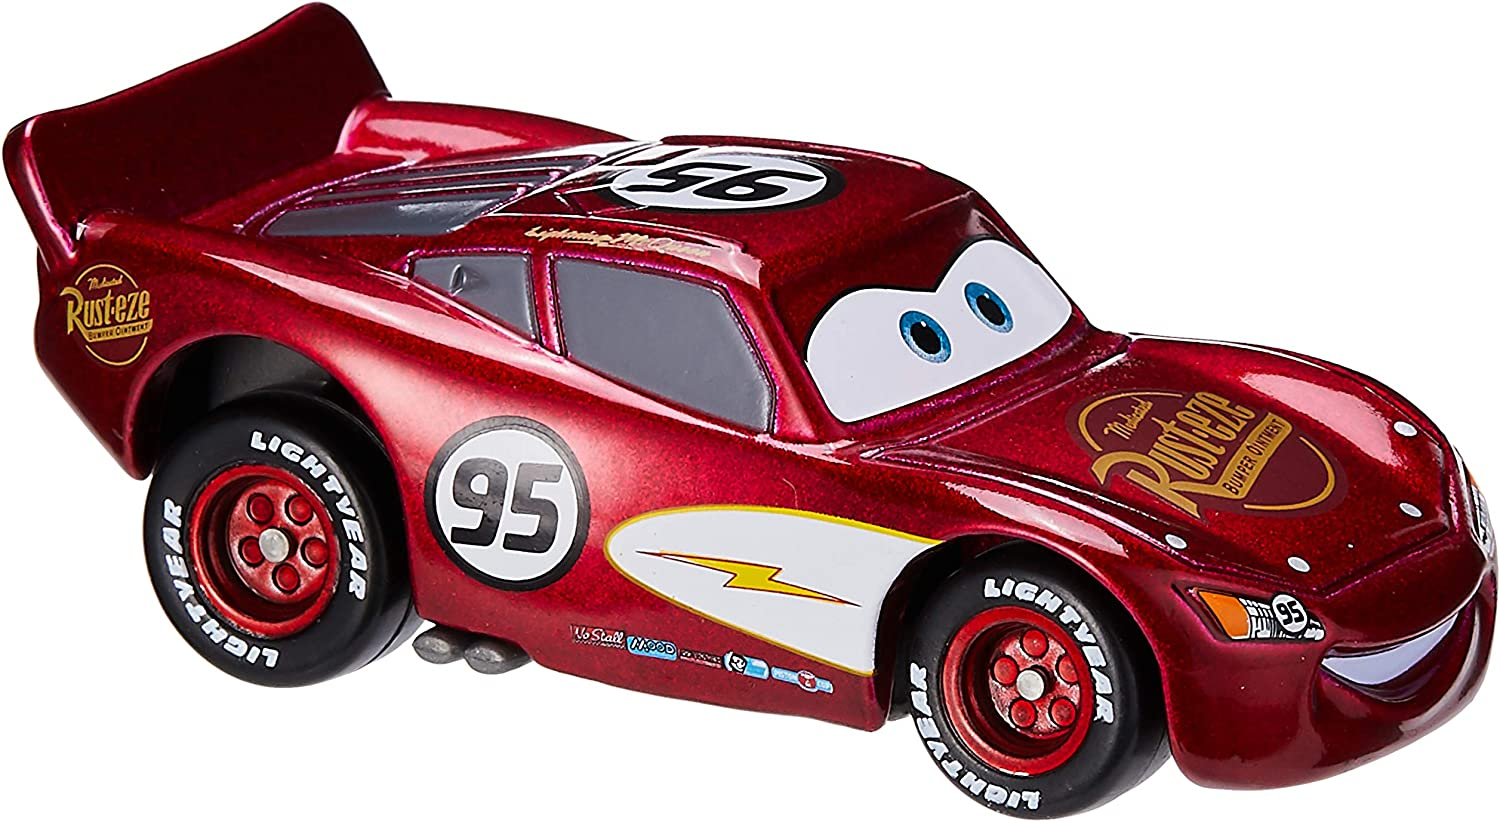 Tomica Disney Pixar Cars Lighting McQueen Radiator Springs Ver C-03 (Japan) (japan import): Amazon.es: Juguetes y juegos